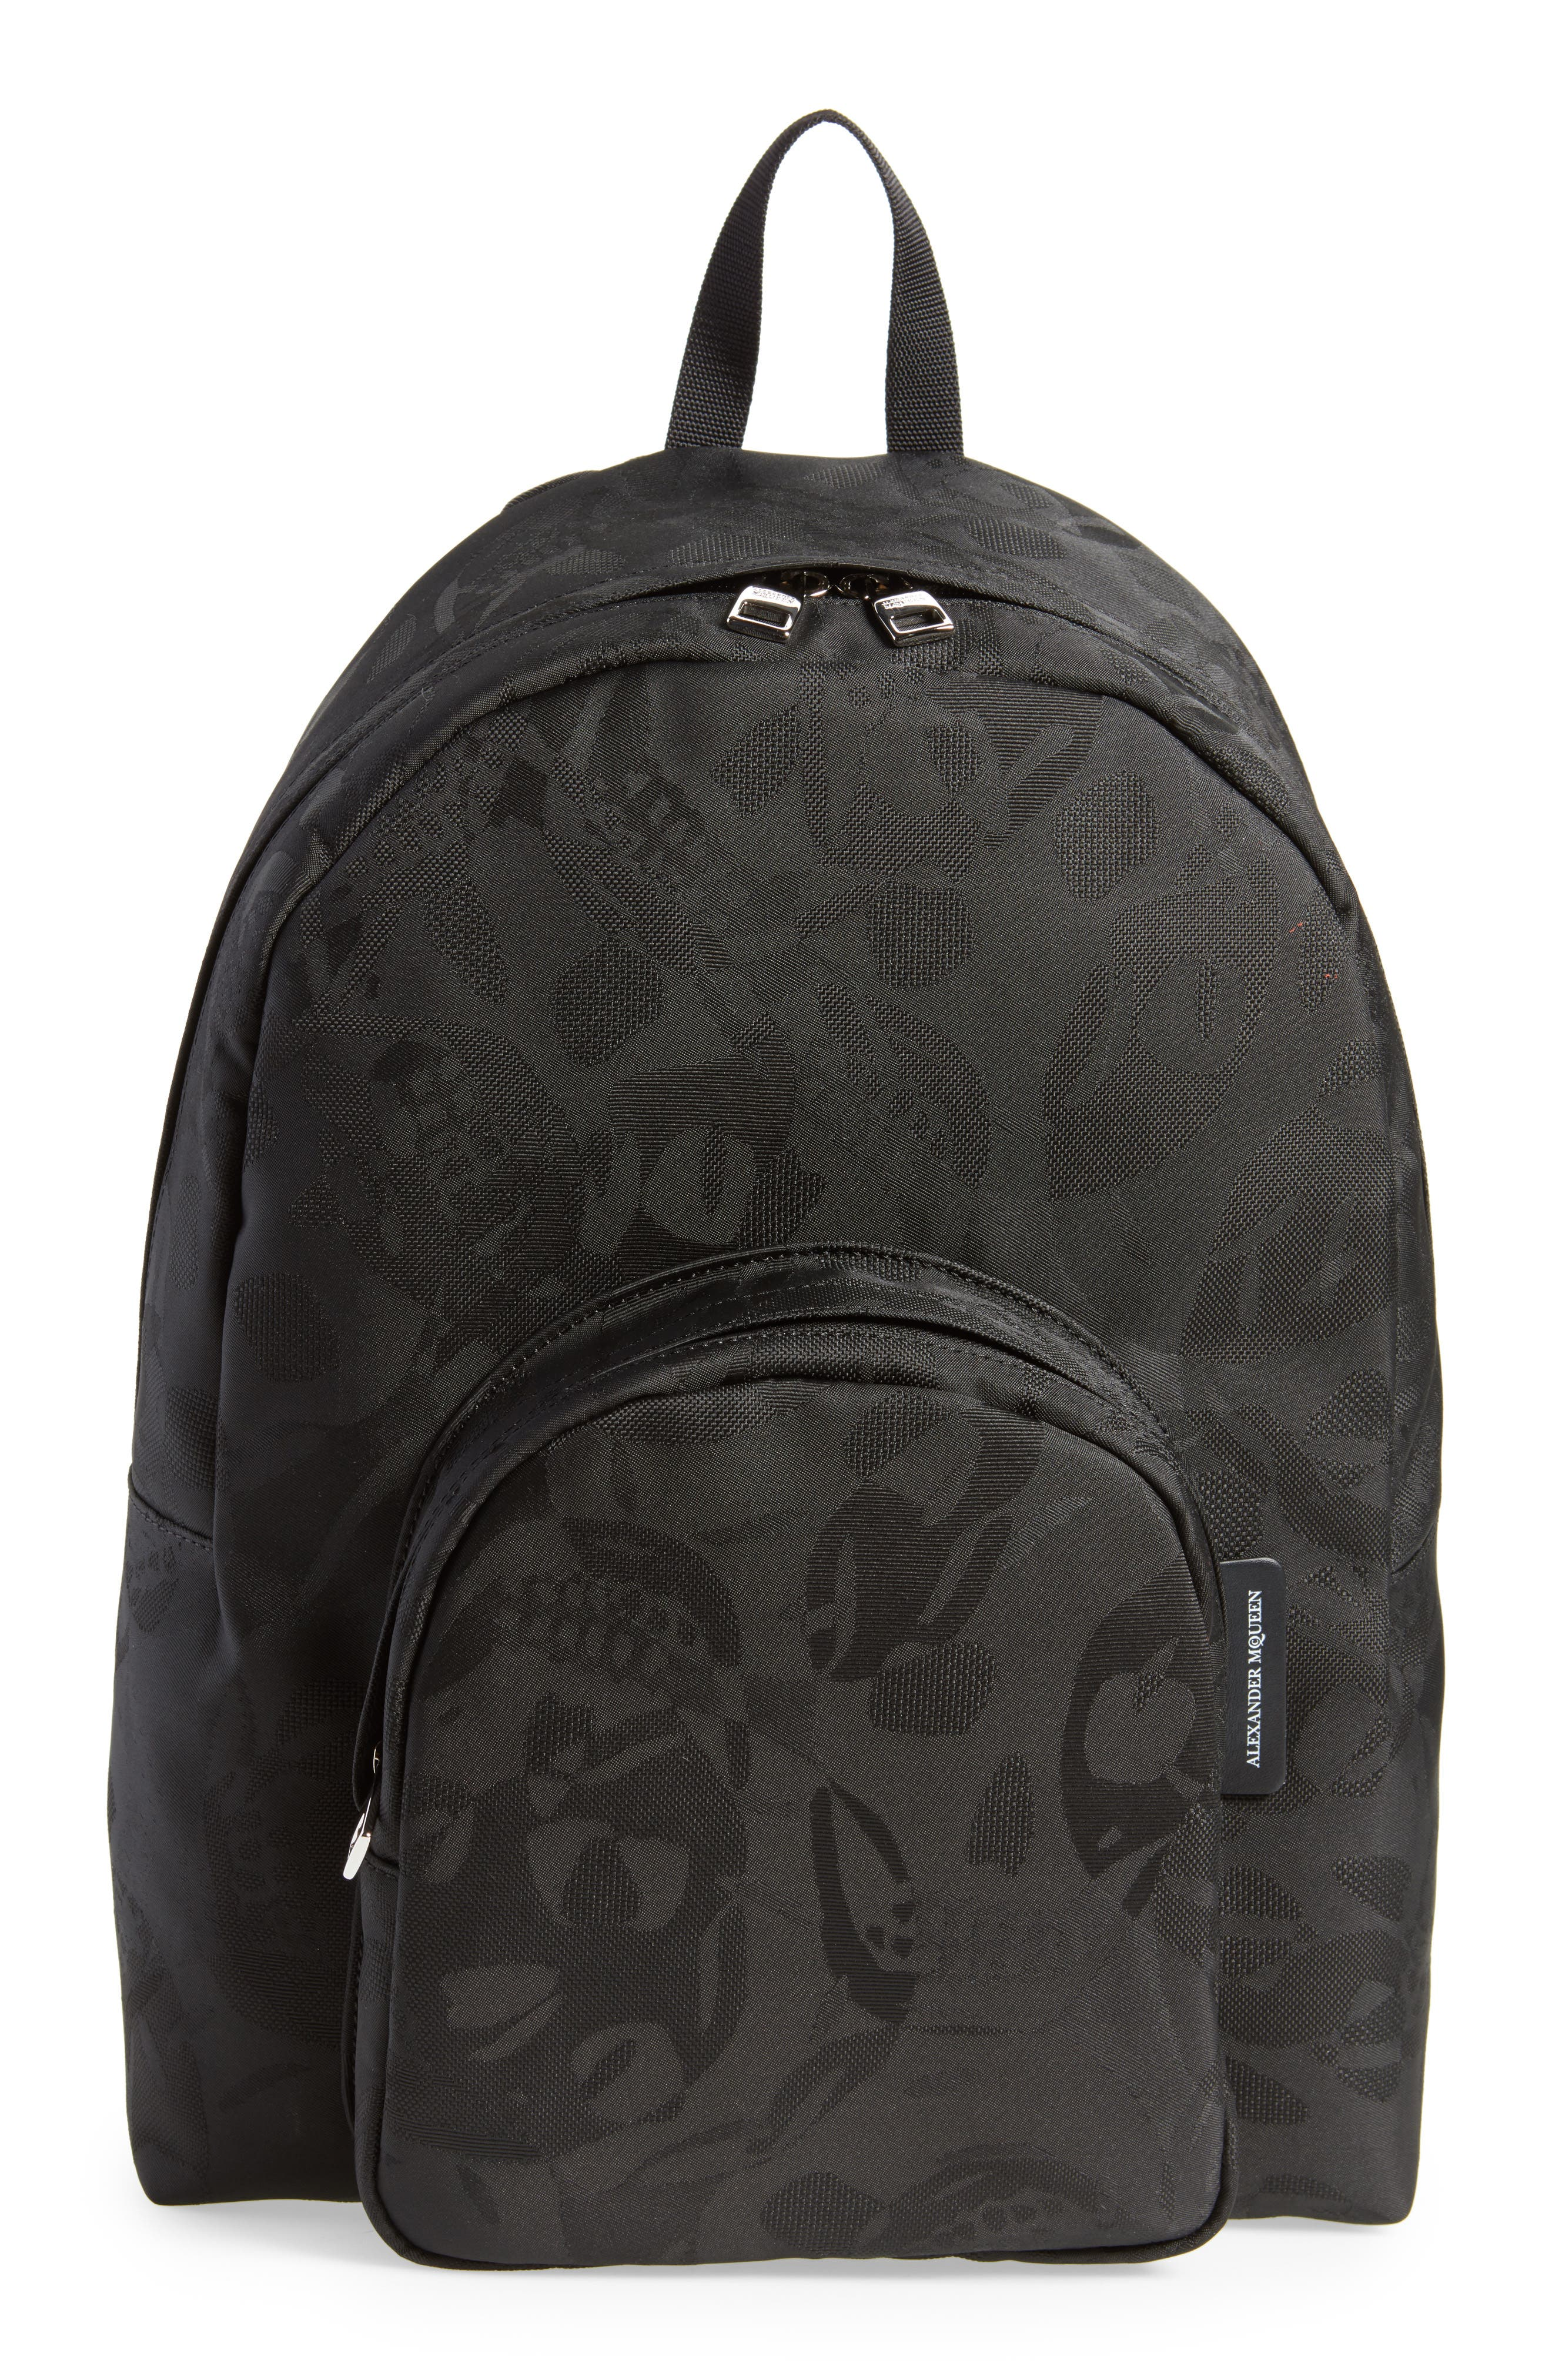 Small Backpack,                         Main,                         color, Black